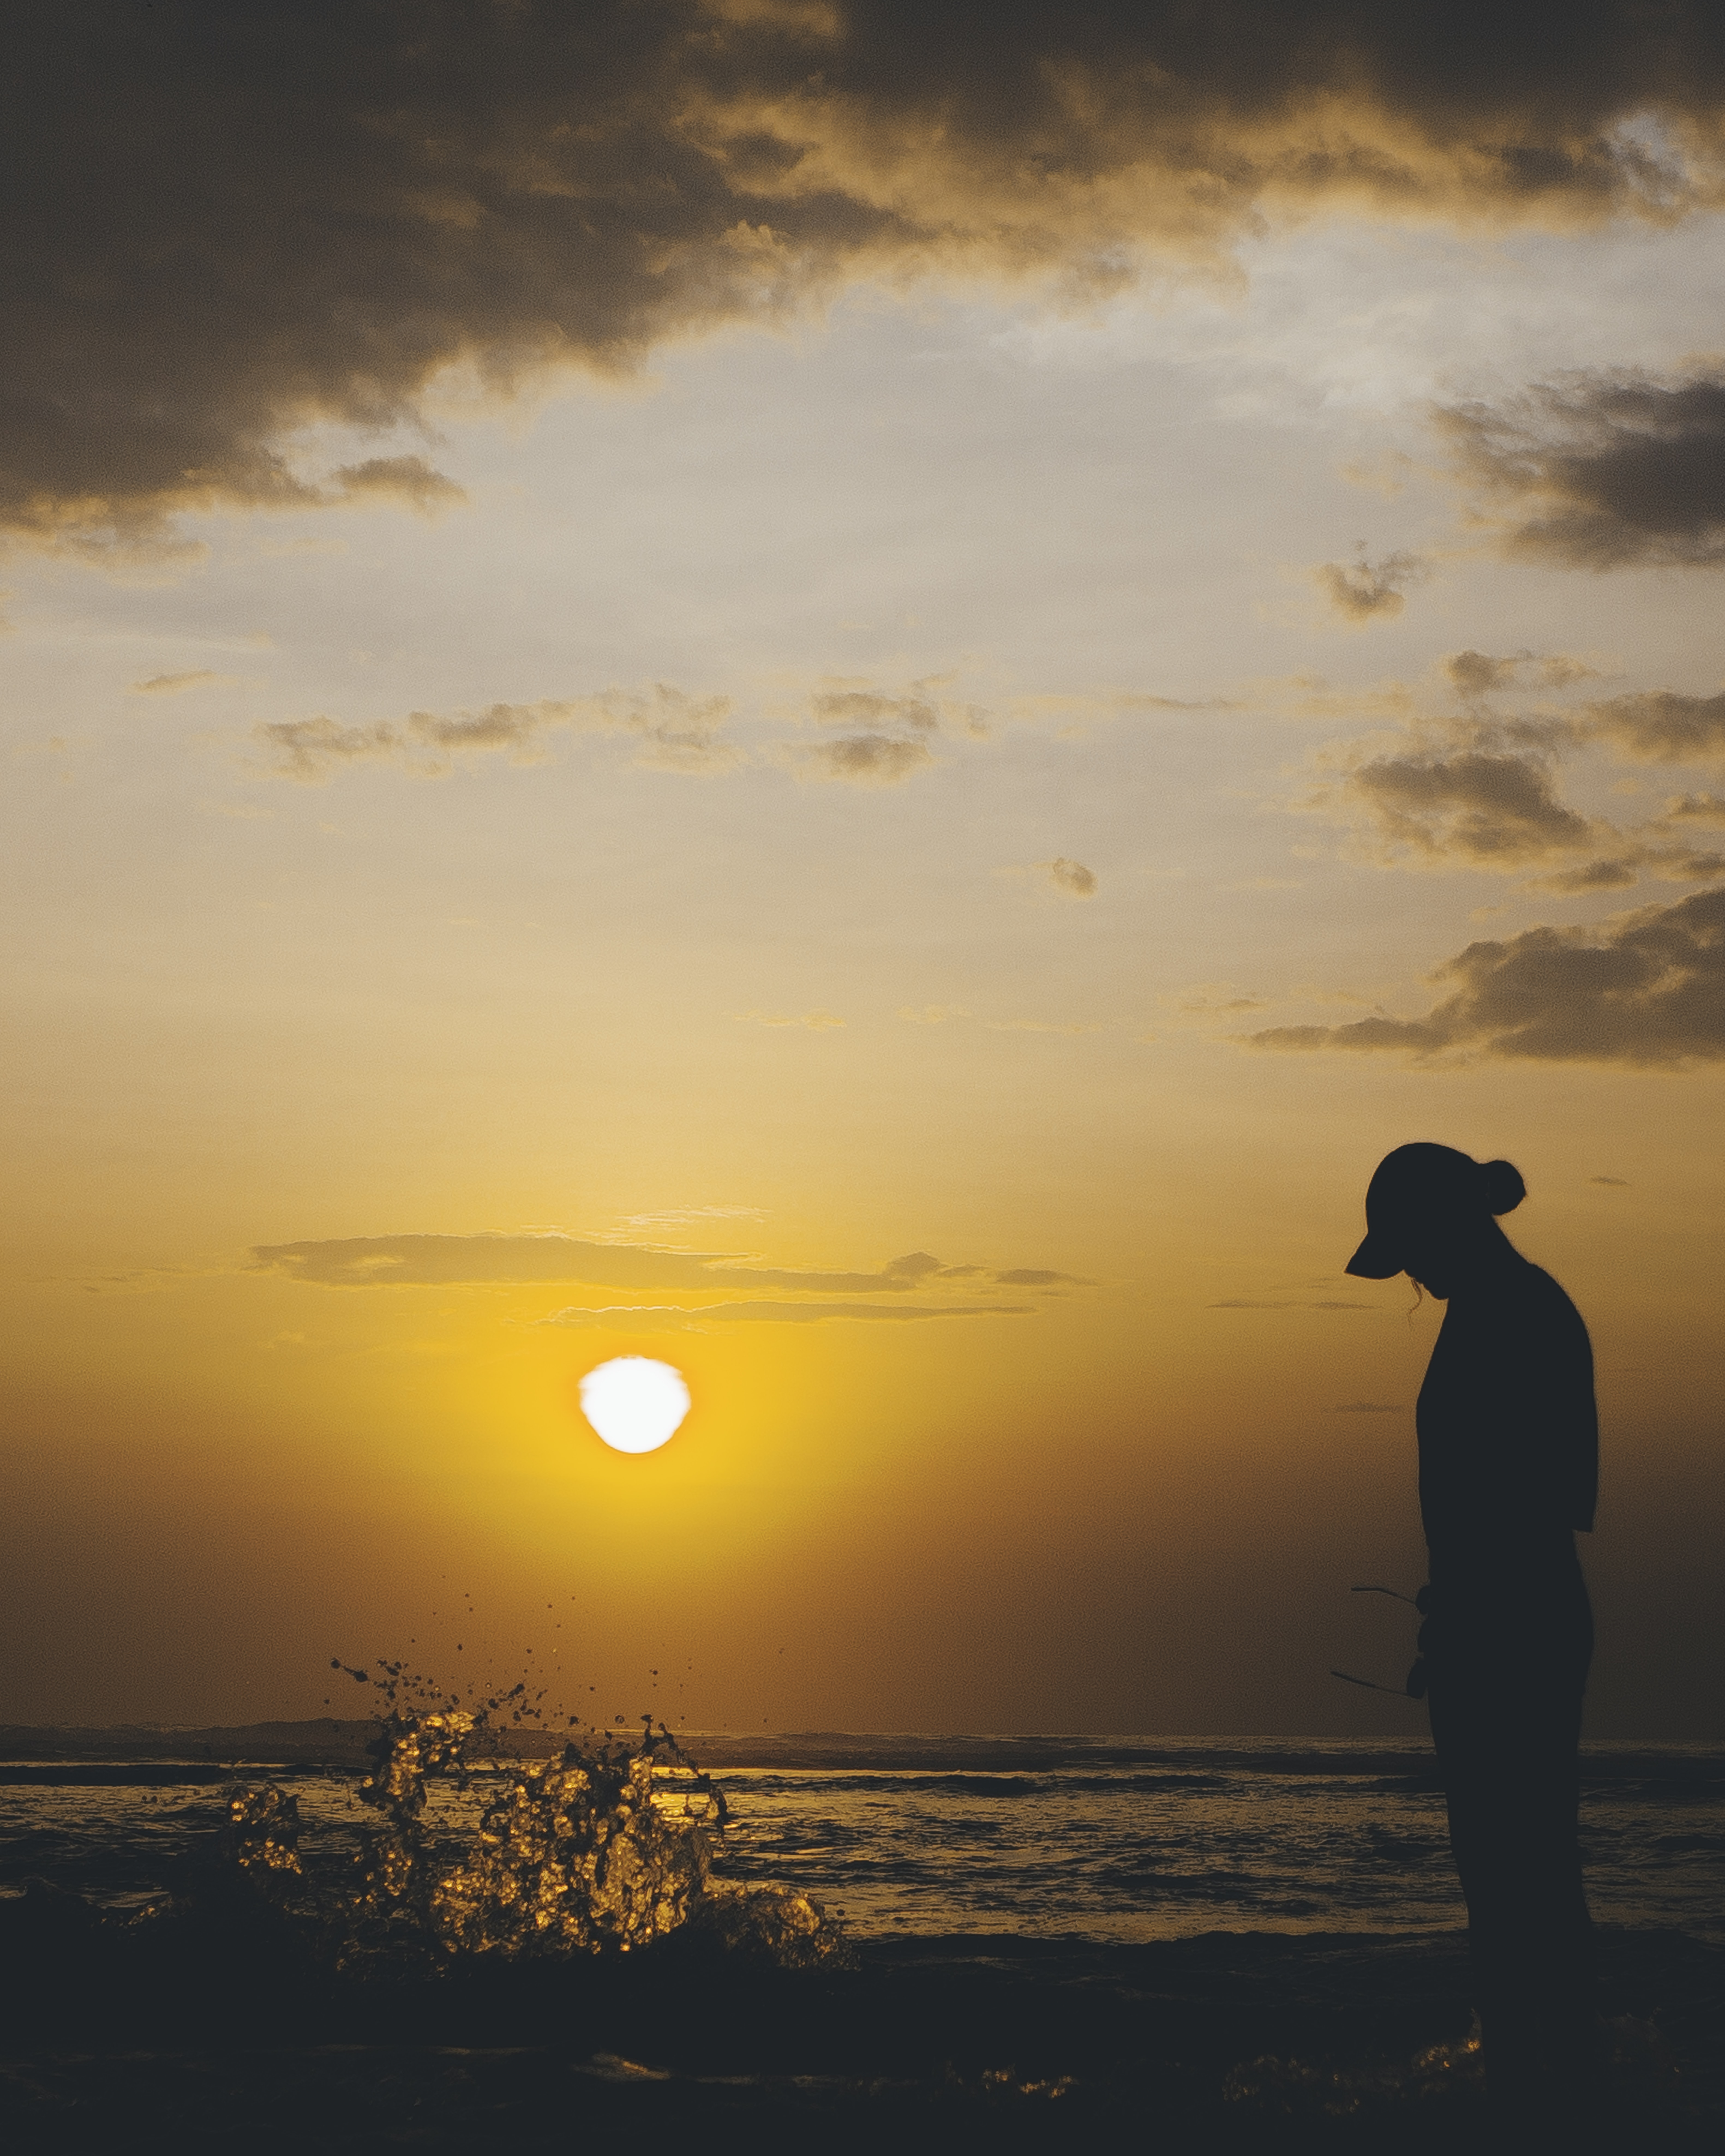 silhouette of person on beach